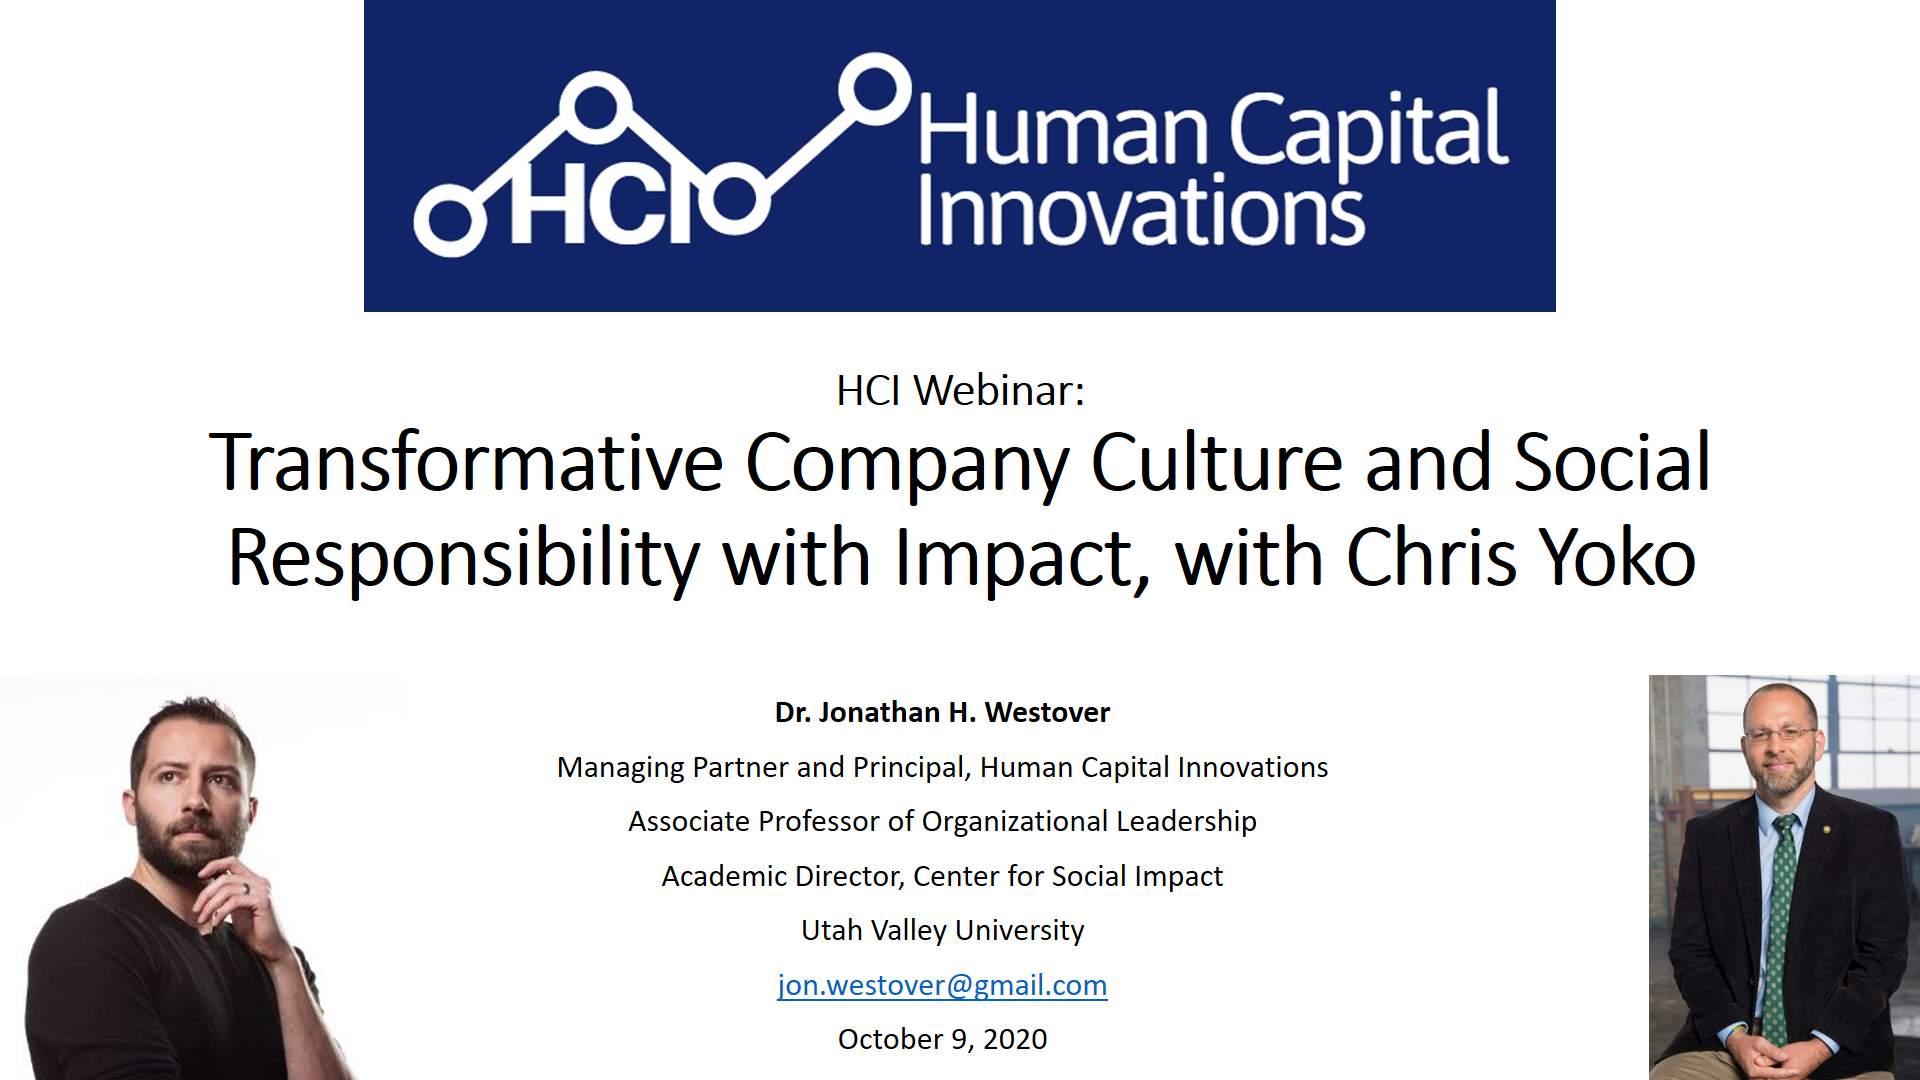 Transformative Company Culture and Social Responsibility with Impact